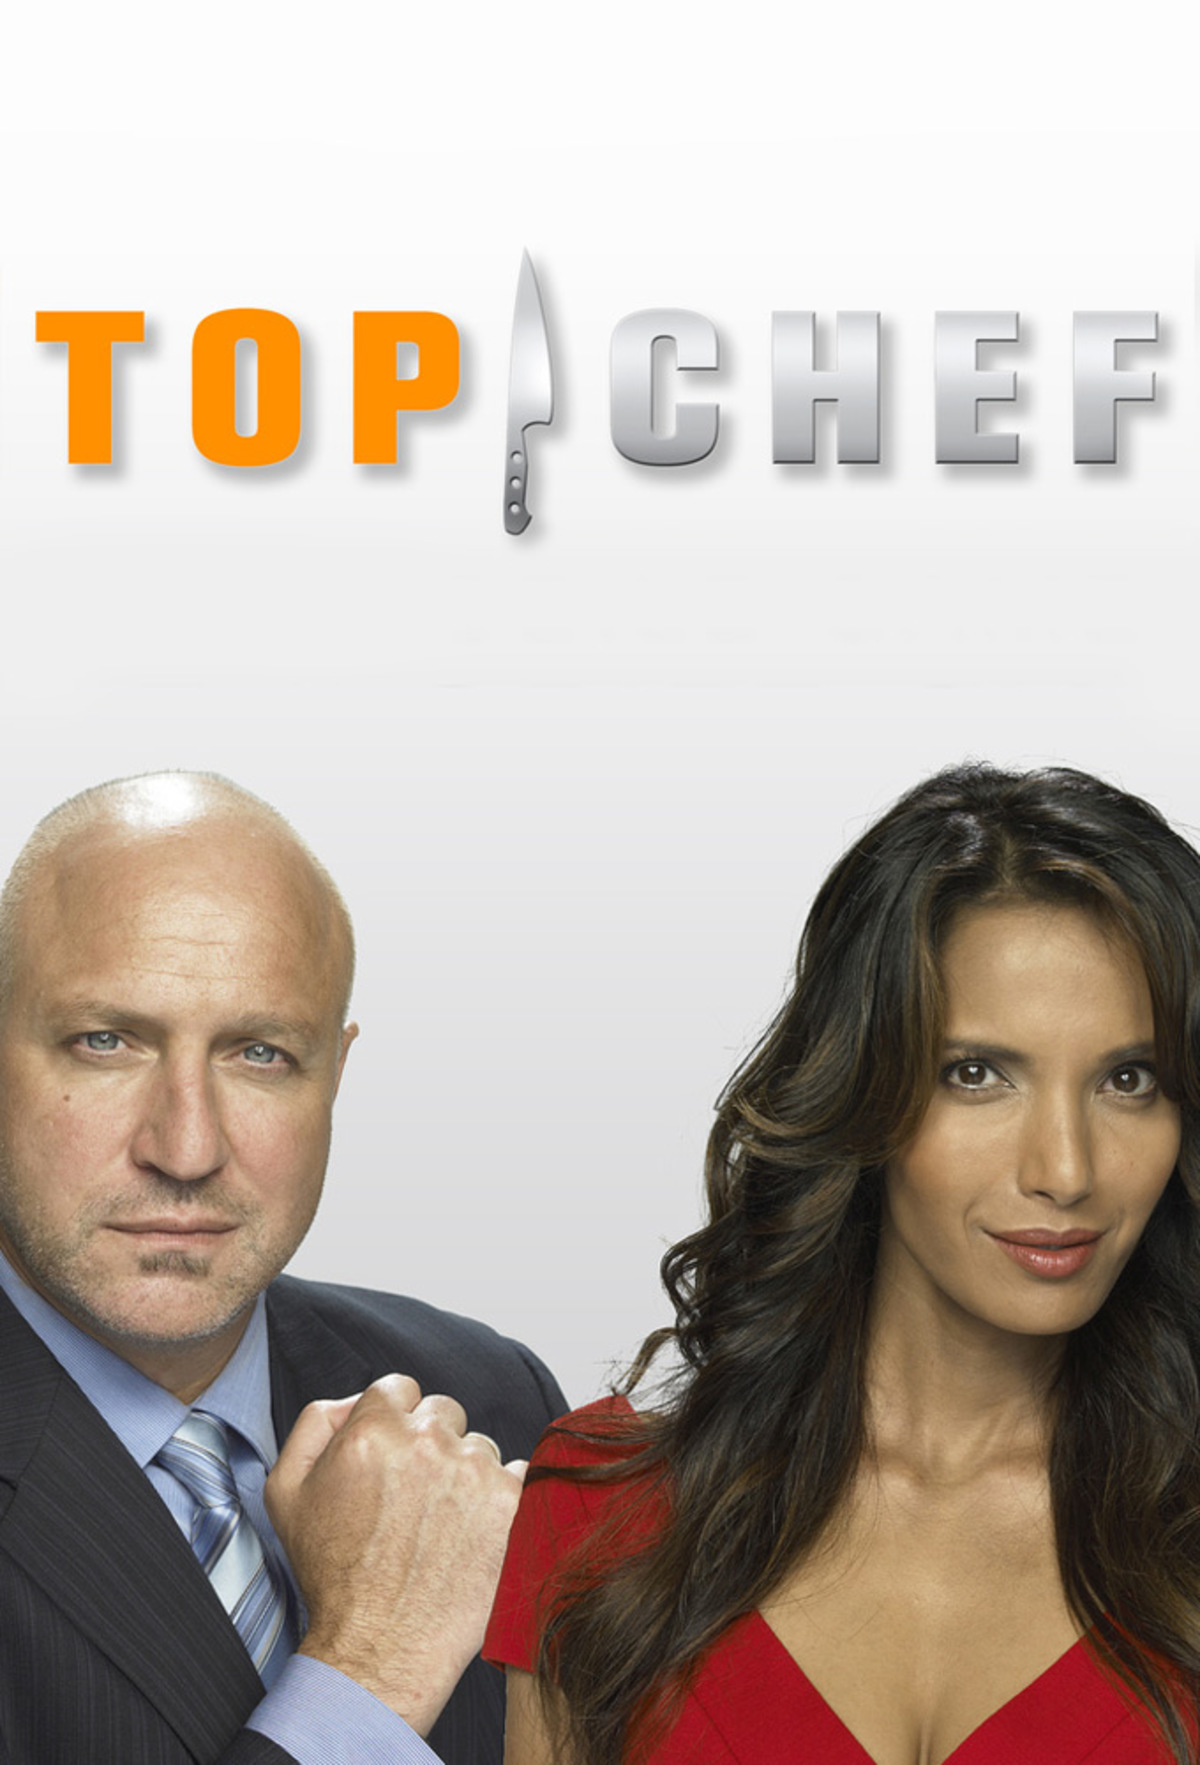 Top Chef - Season 17 Episode 14 - Finito!